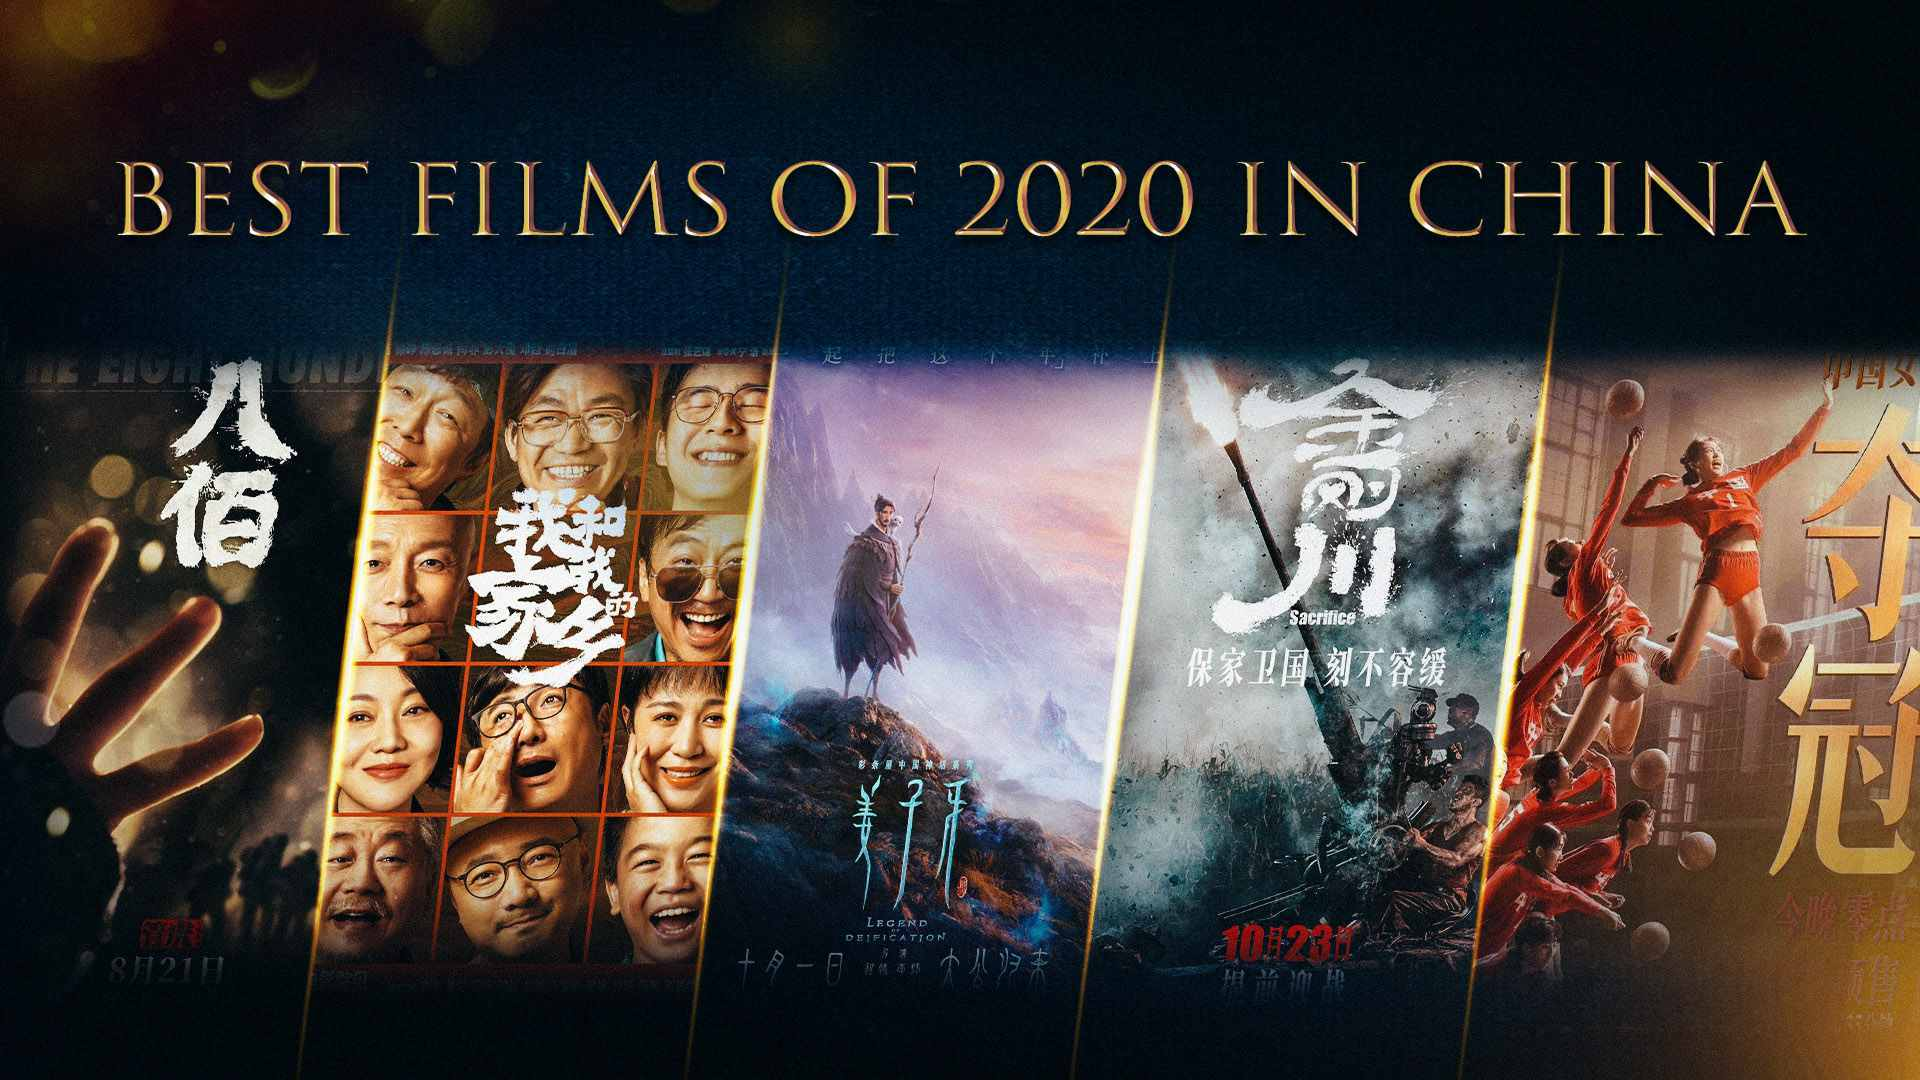 Domestic titles lead China's box office resurgence after tough start of 2020